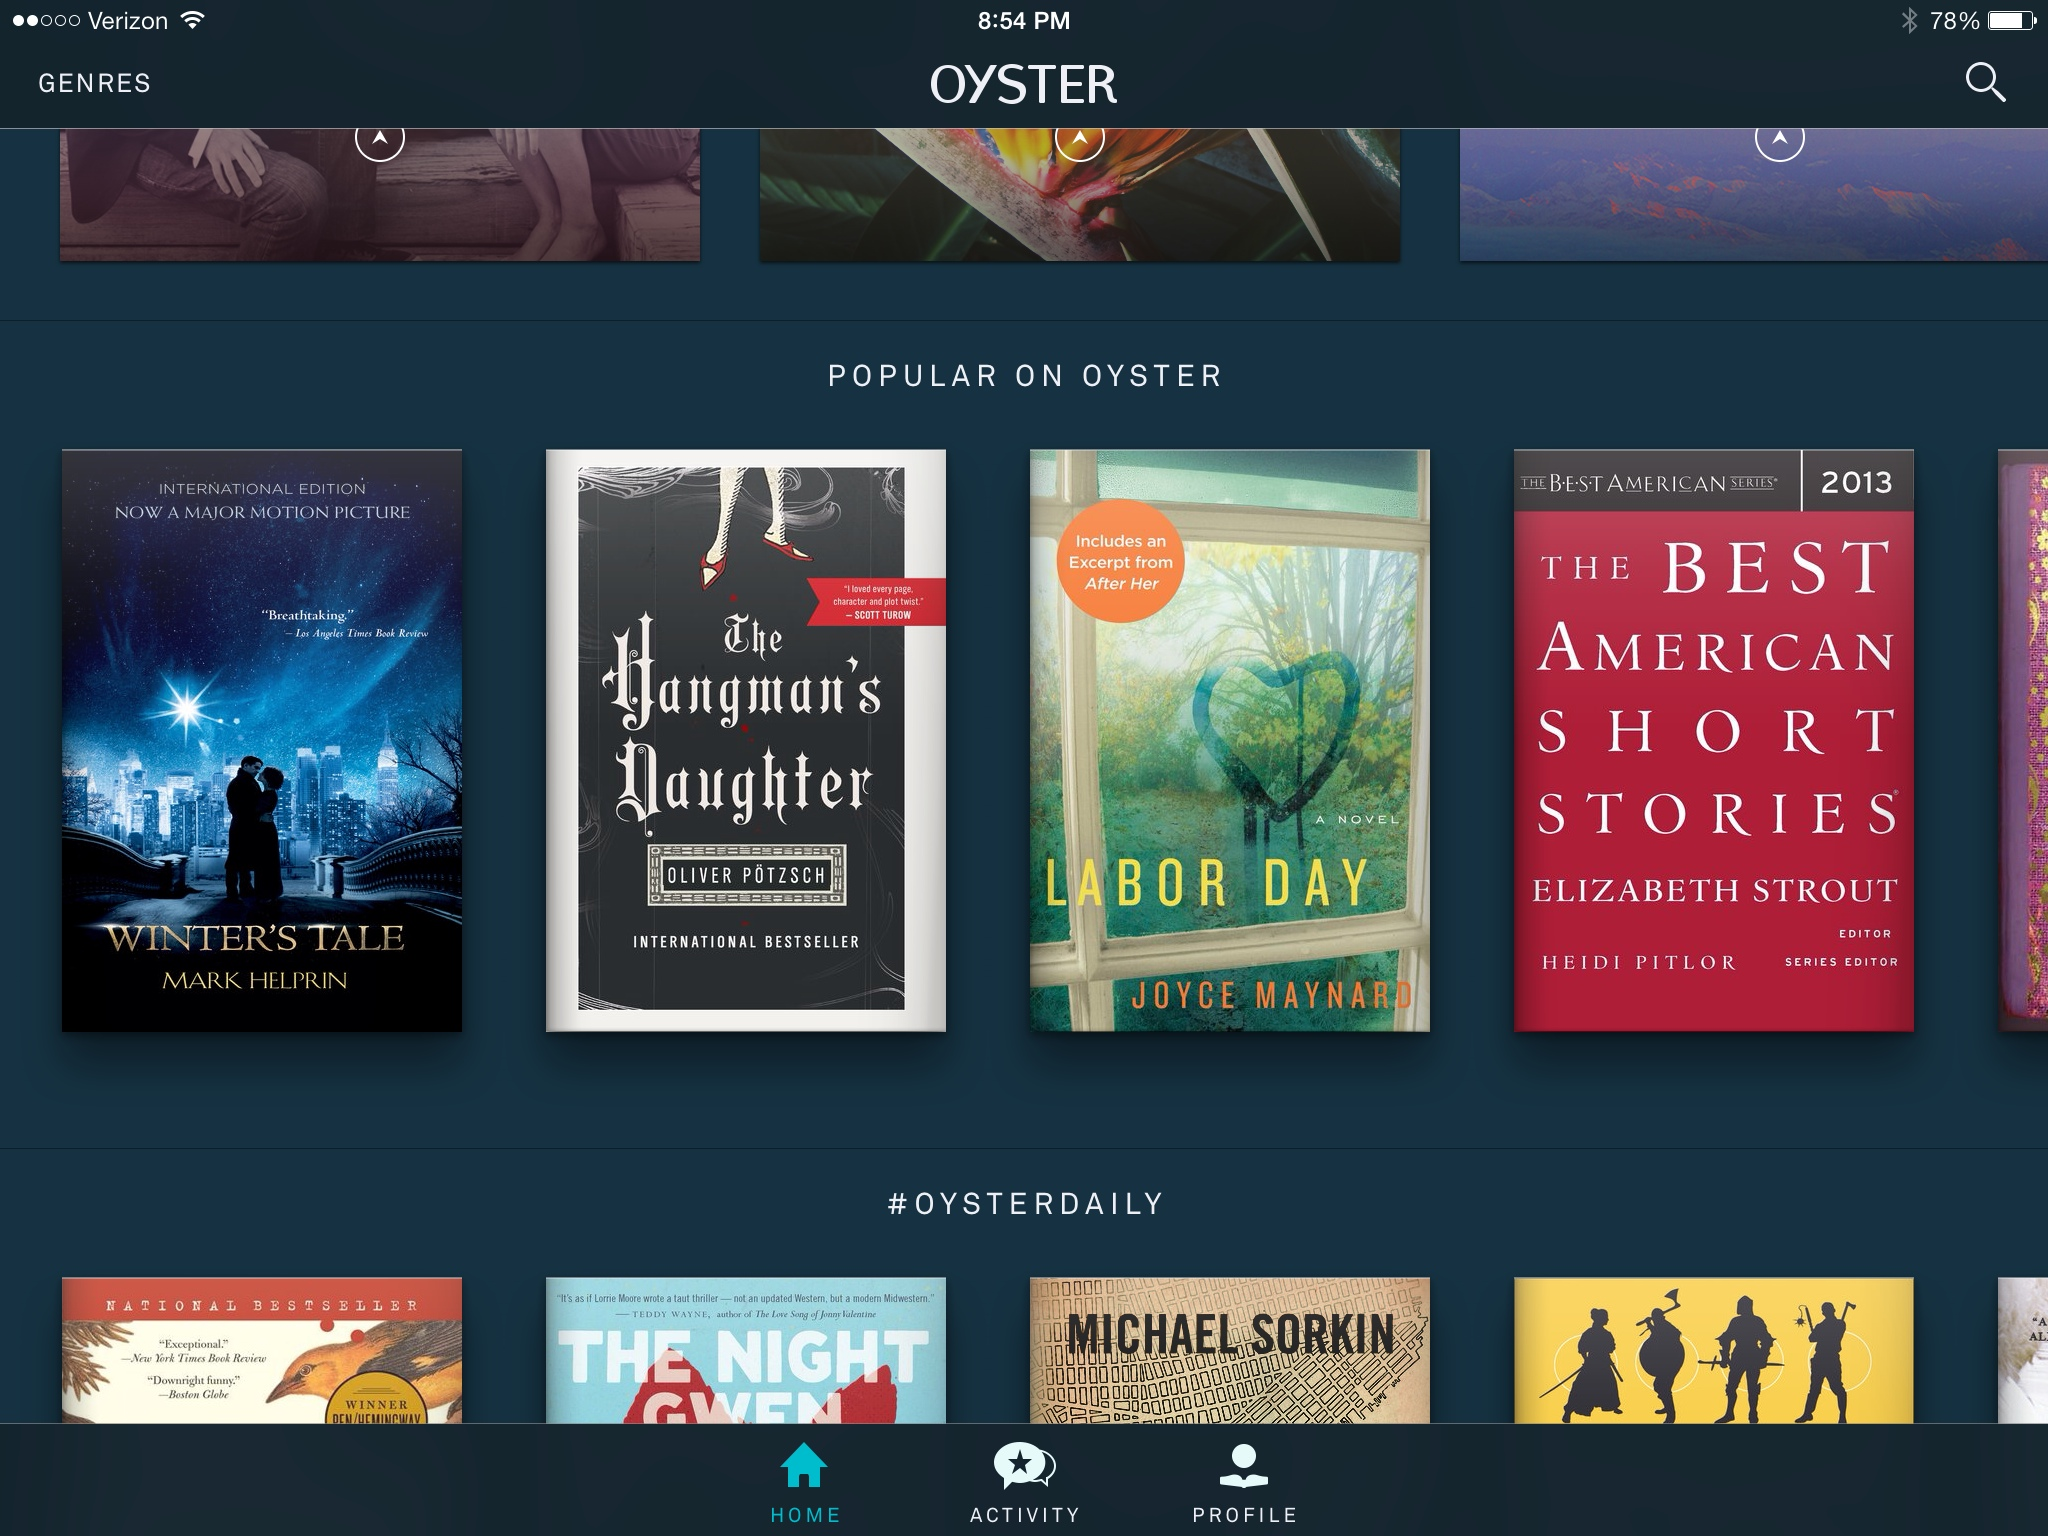 GearDiary Oyster Books Subscription eBook Service: Great Idea, Awful Execution